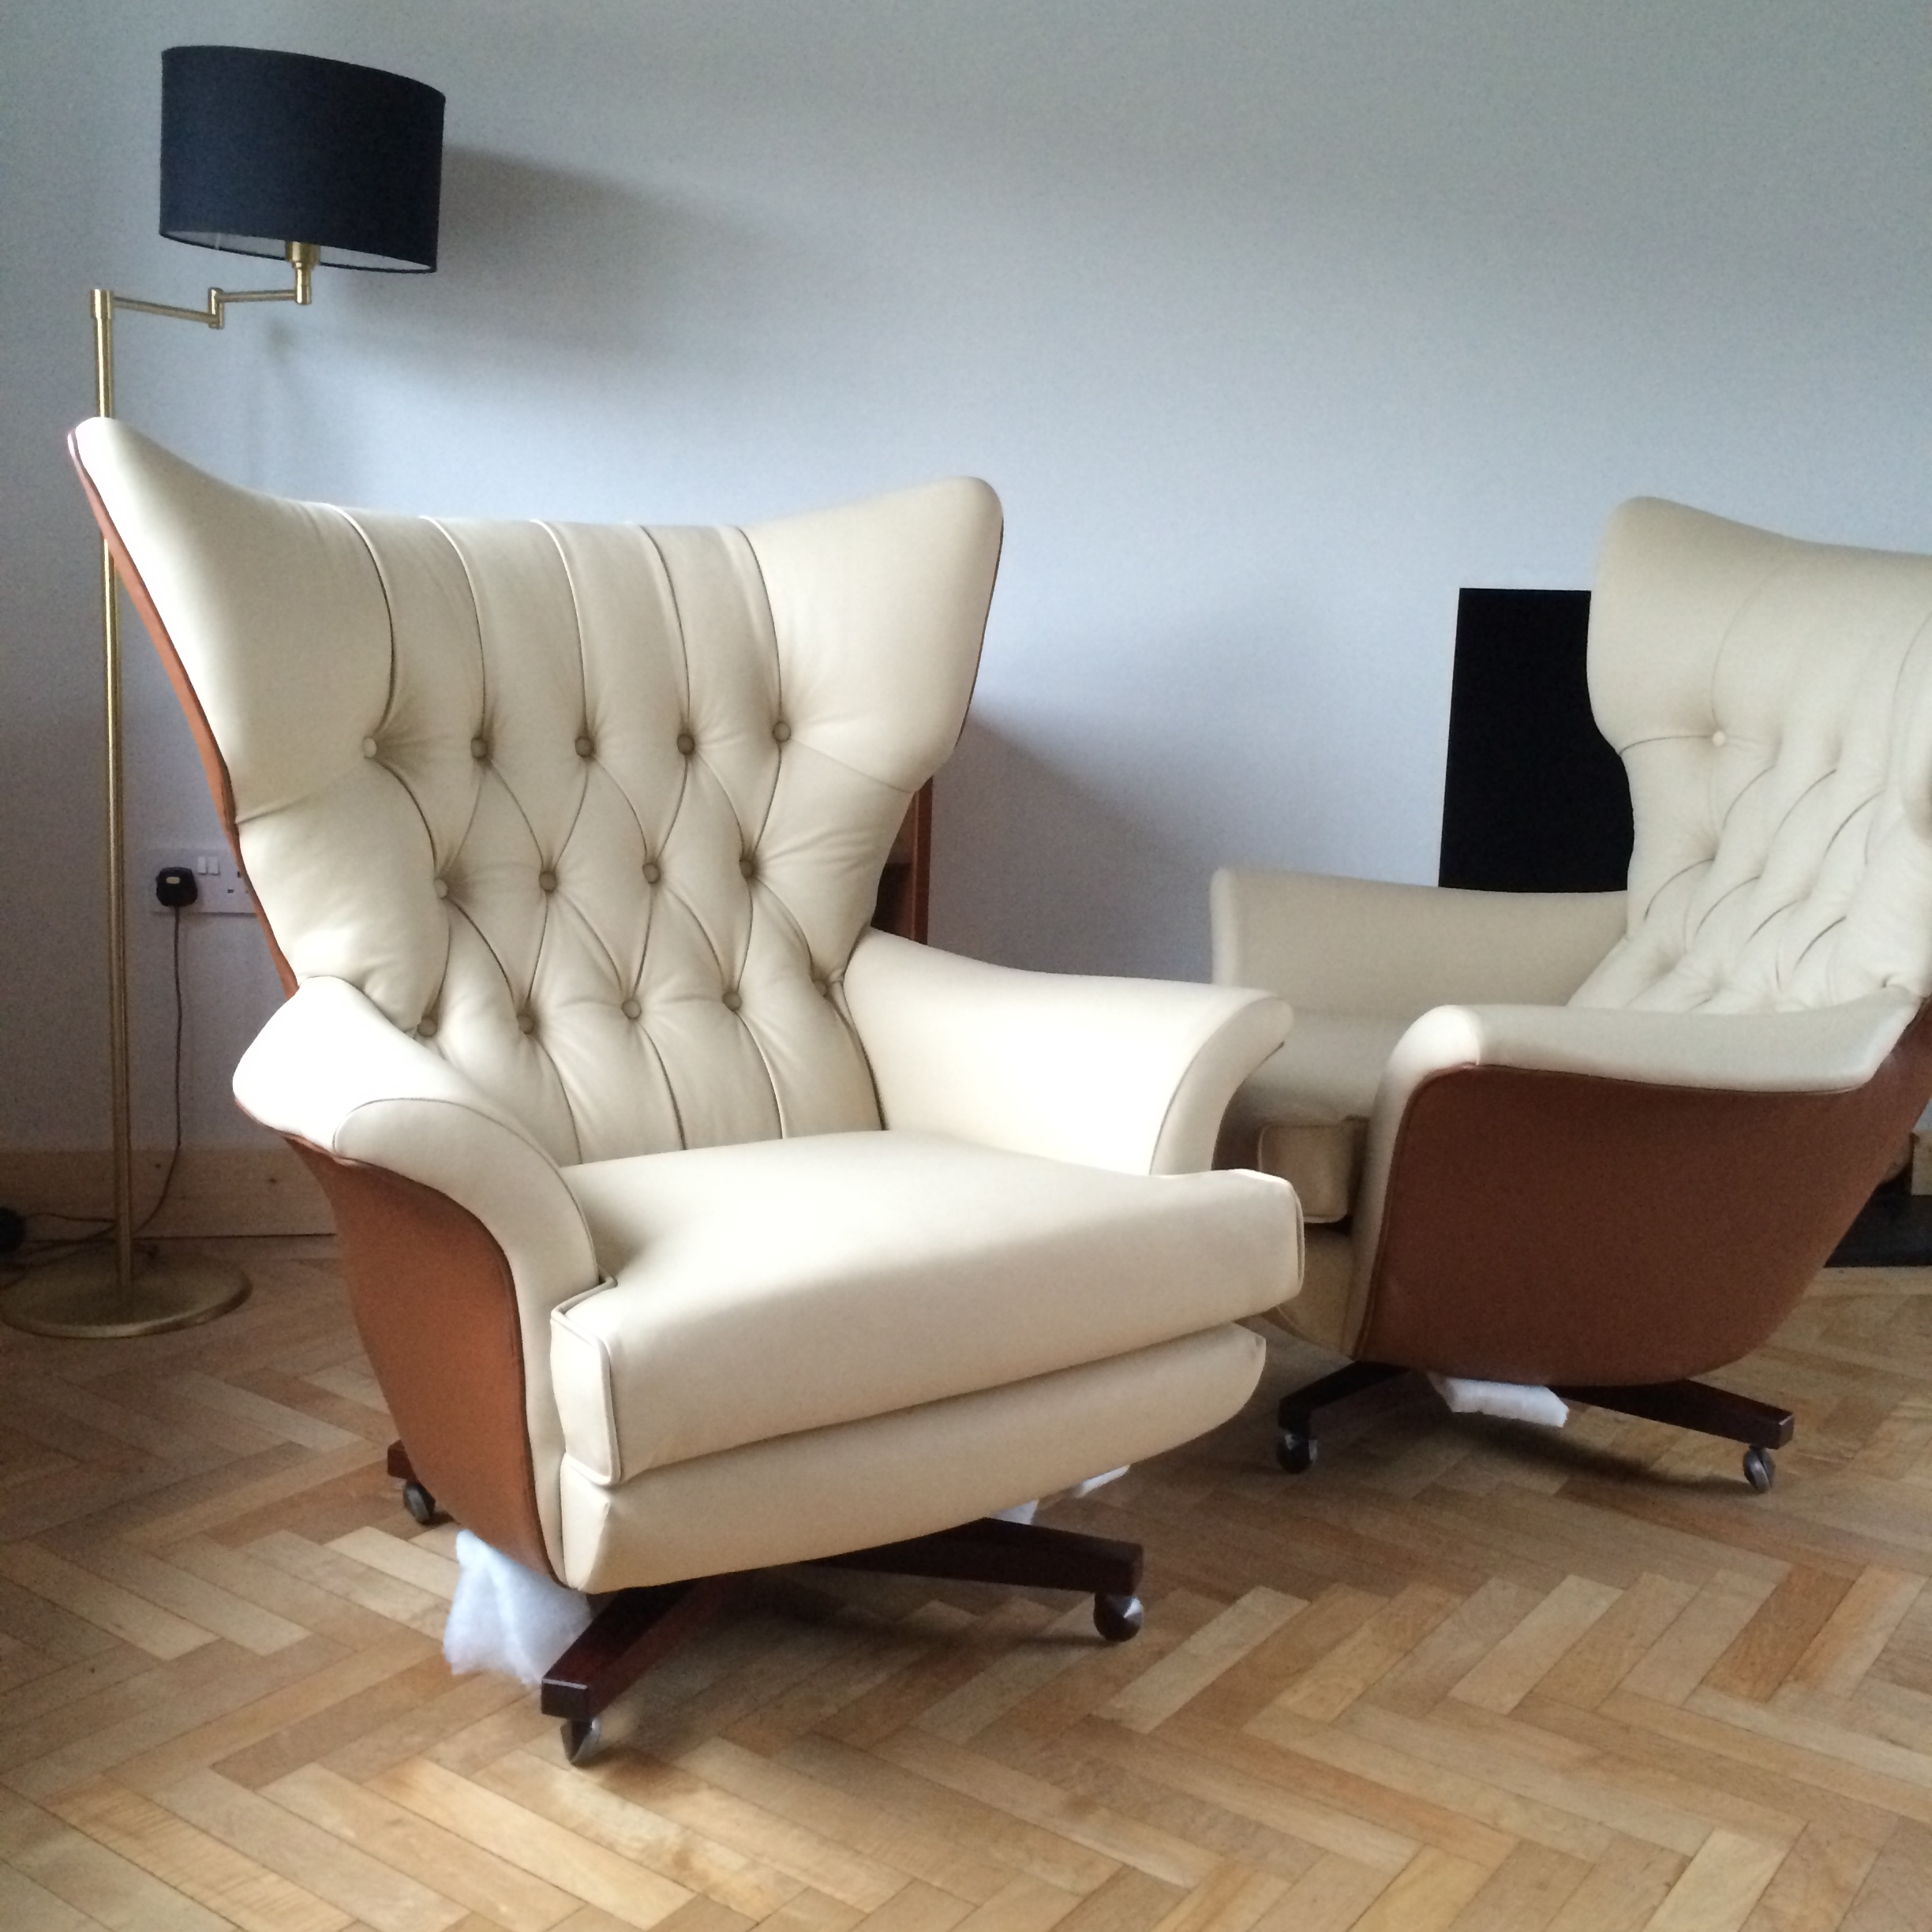 Our Latest Vintage G Plan 6250 Chair Reupholstery Projects